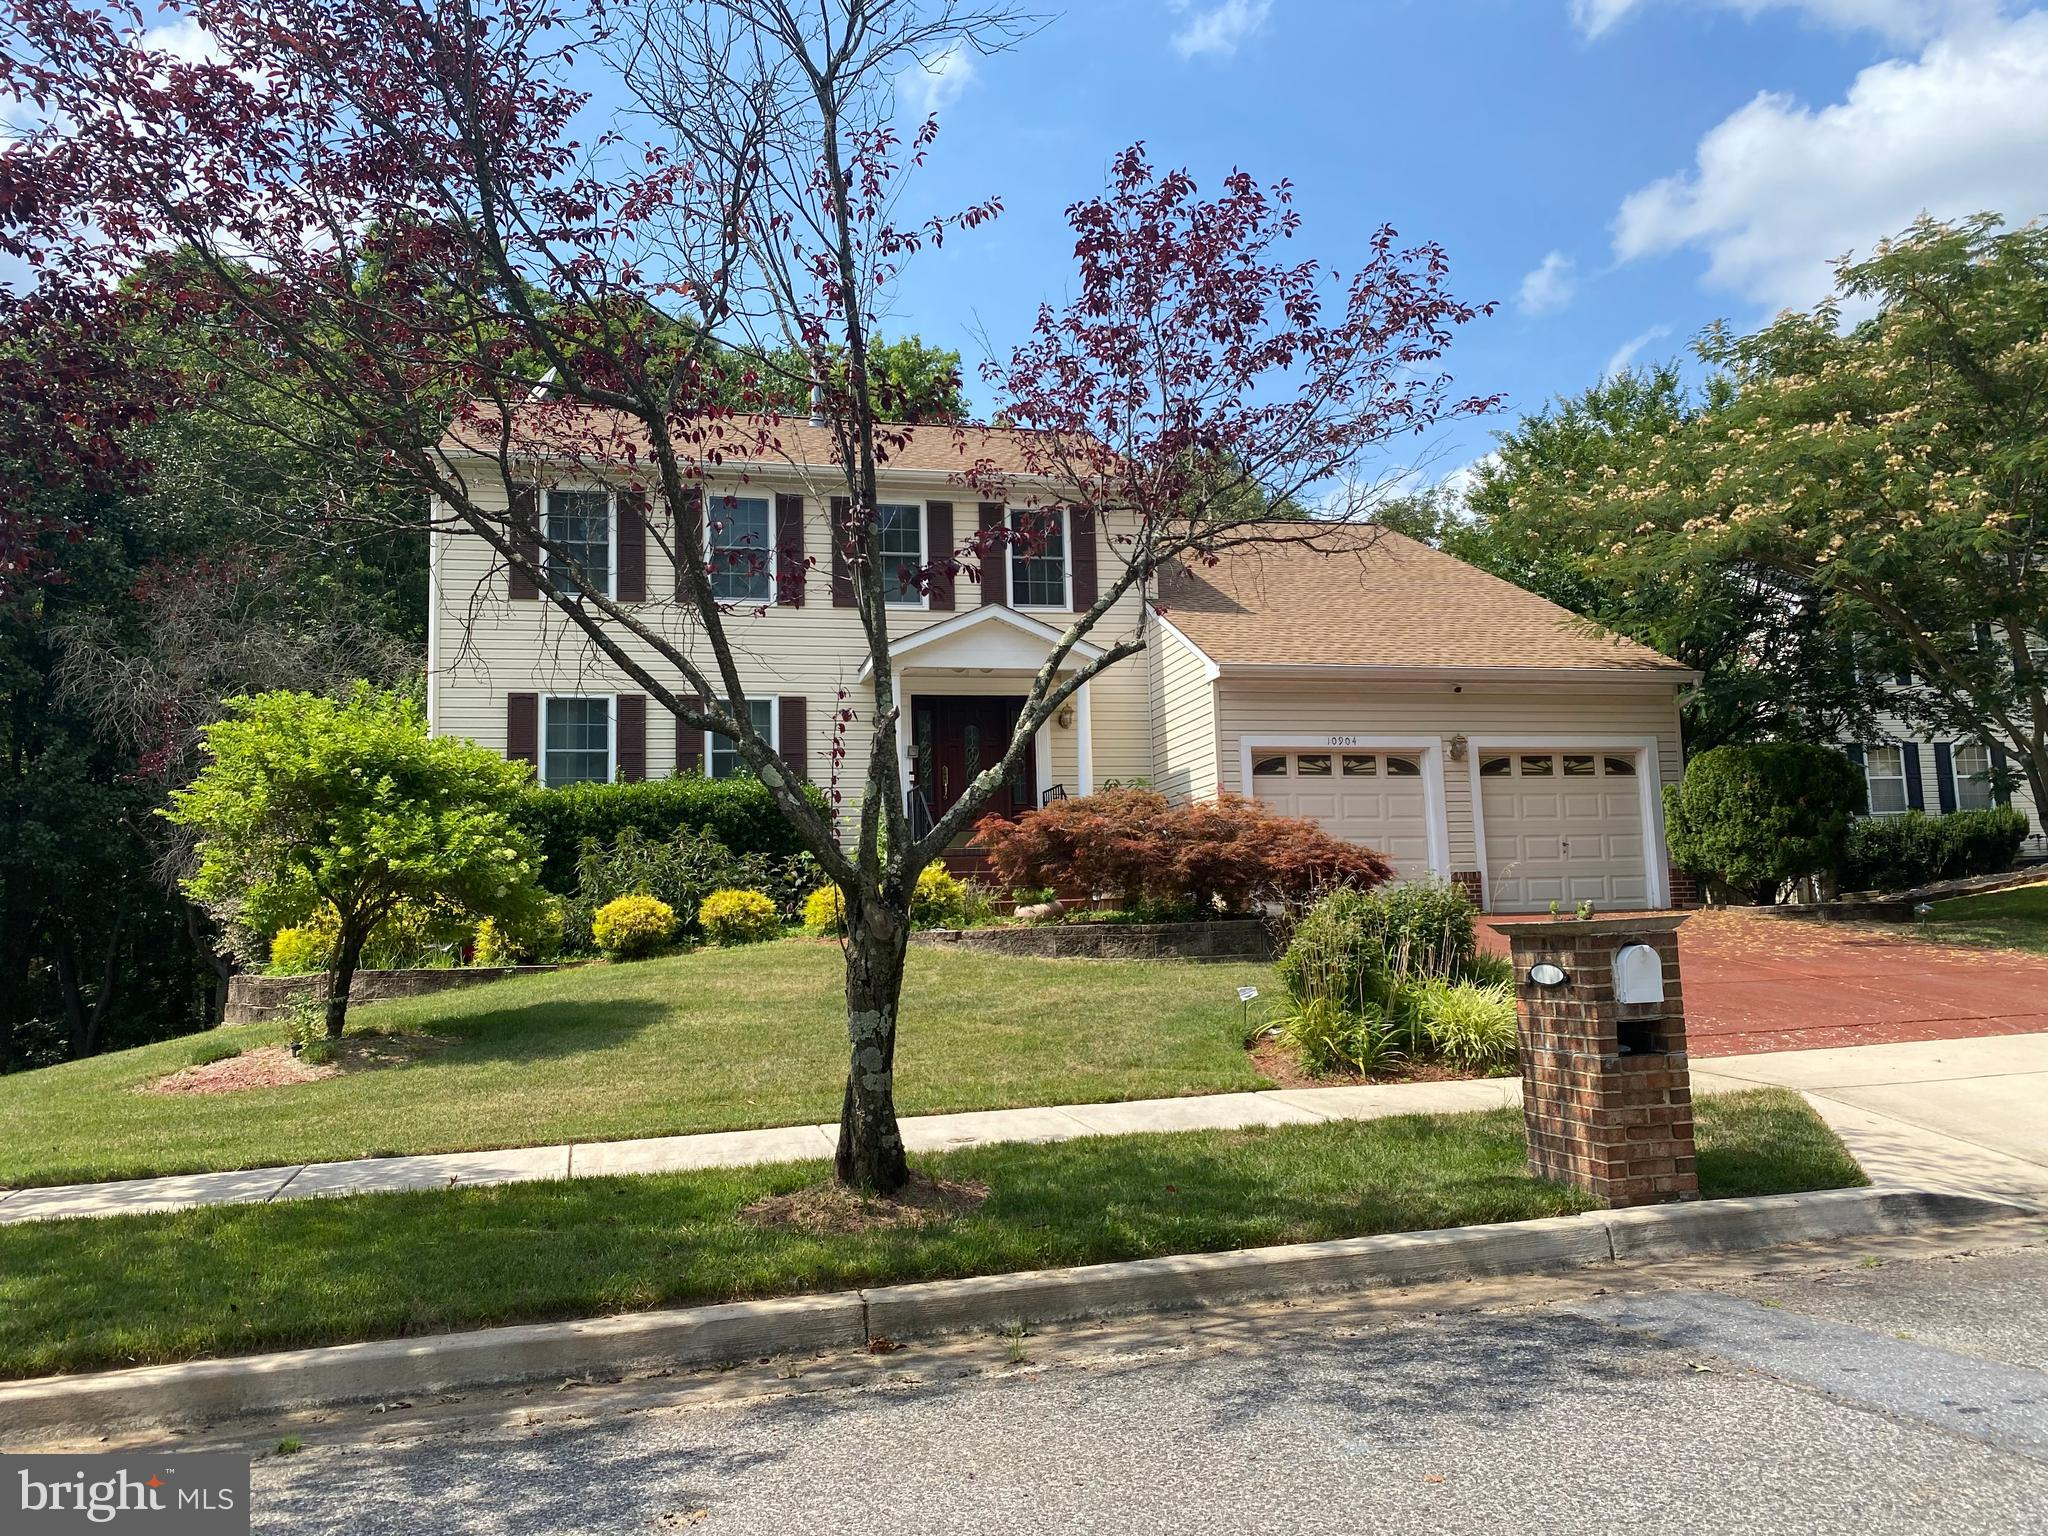 ESTATE SALE!!!Welcome Home!!! This colonial home is a located in a cul de sac.  This home has upgrad